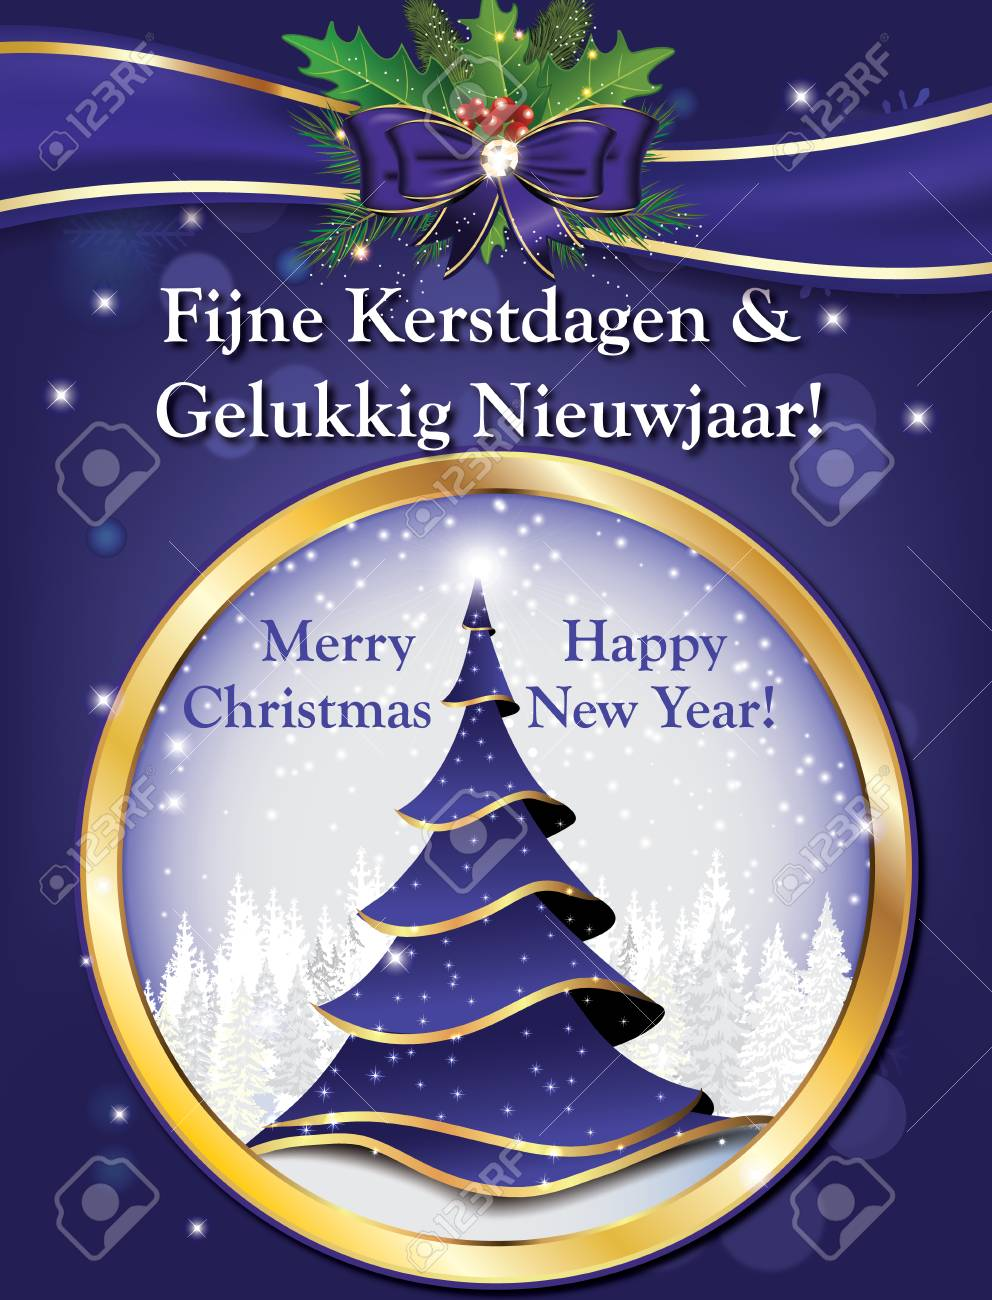 dutch lovely greeting card for winter holiday merry christmas and happy new year fijne